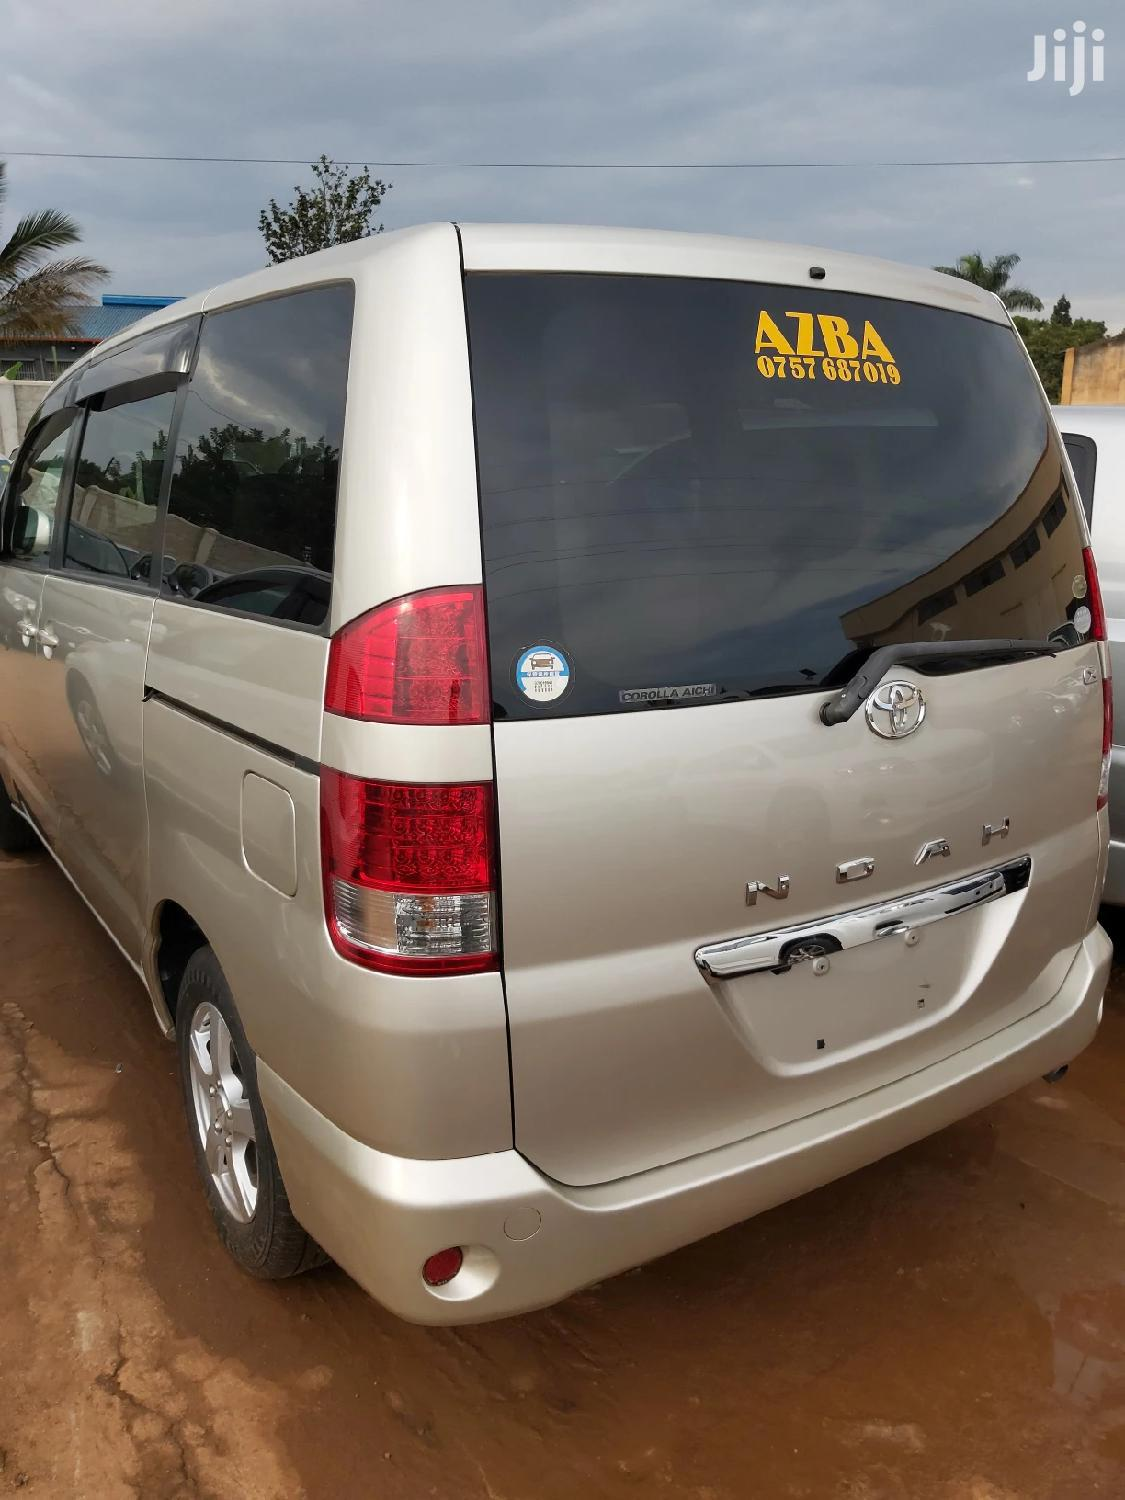 Toyota Noah 2007 Gold | Cars for sale in Kampala, Central Region, Uganda